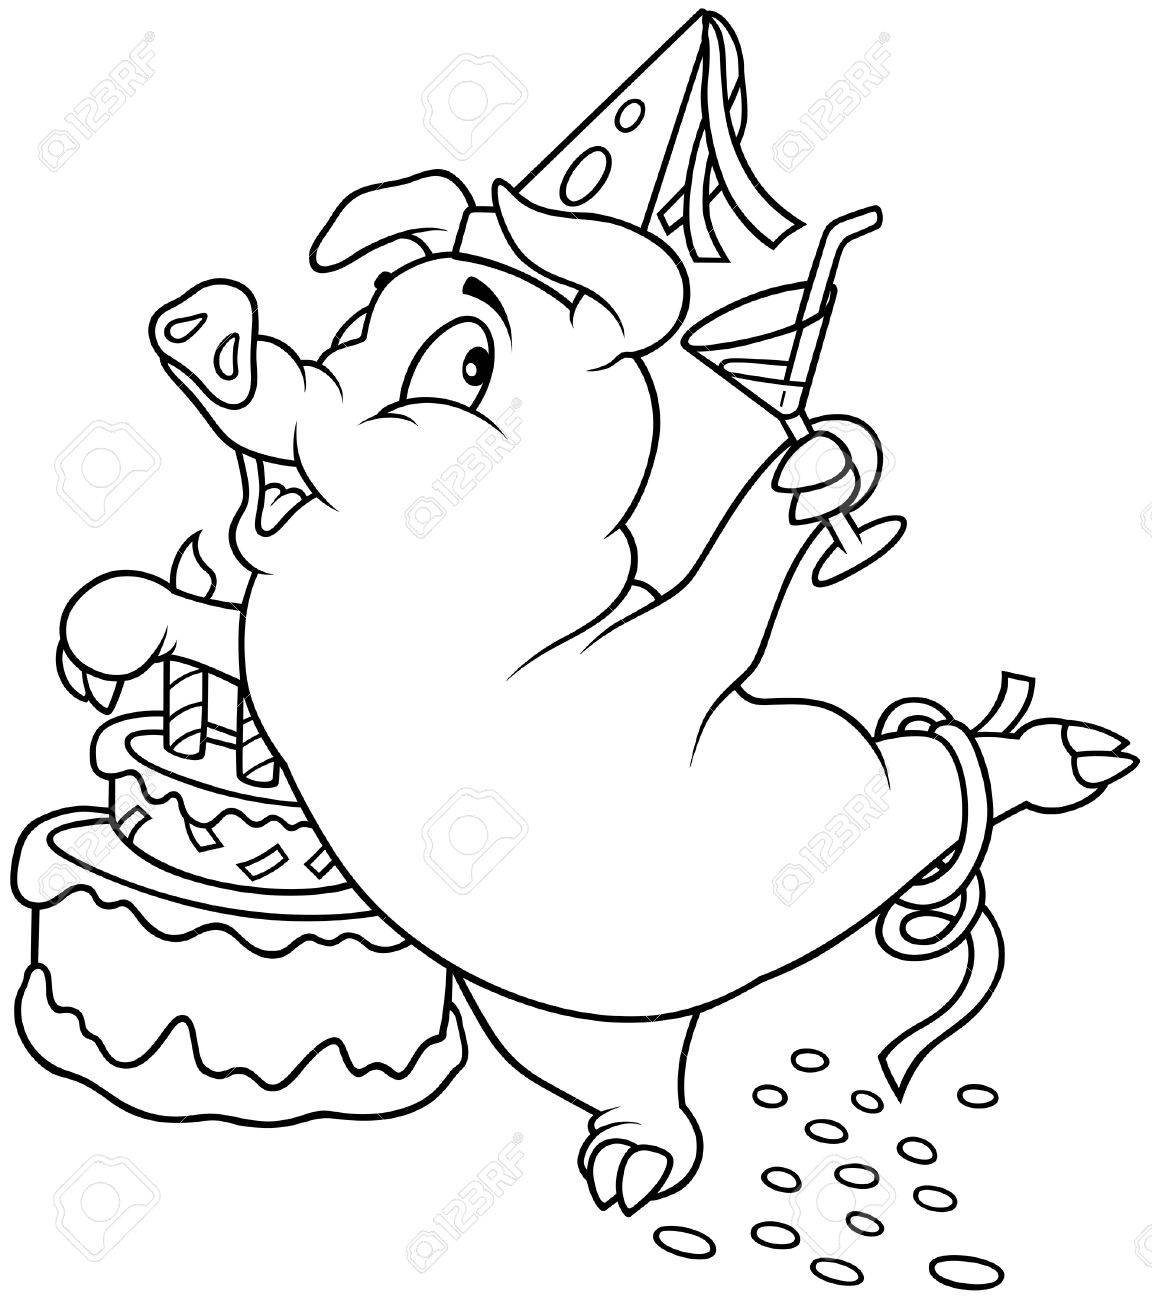 Piglet and Birthday - Black and White Cartoon illustration, Vector Stock Vector - 8756009